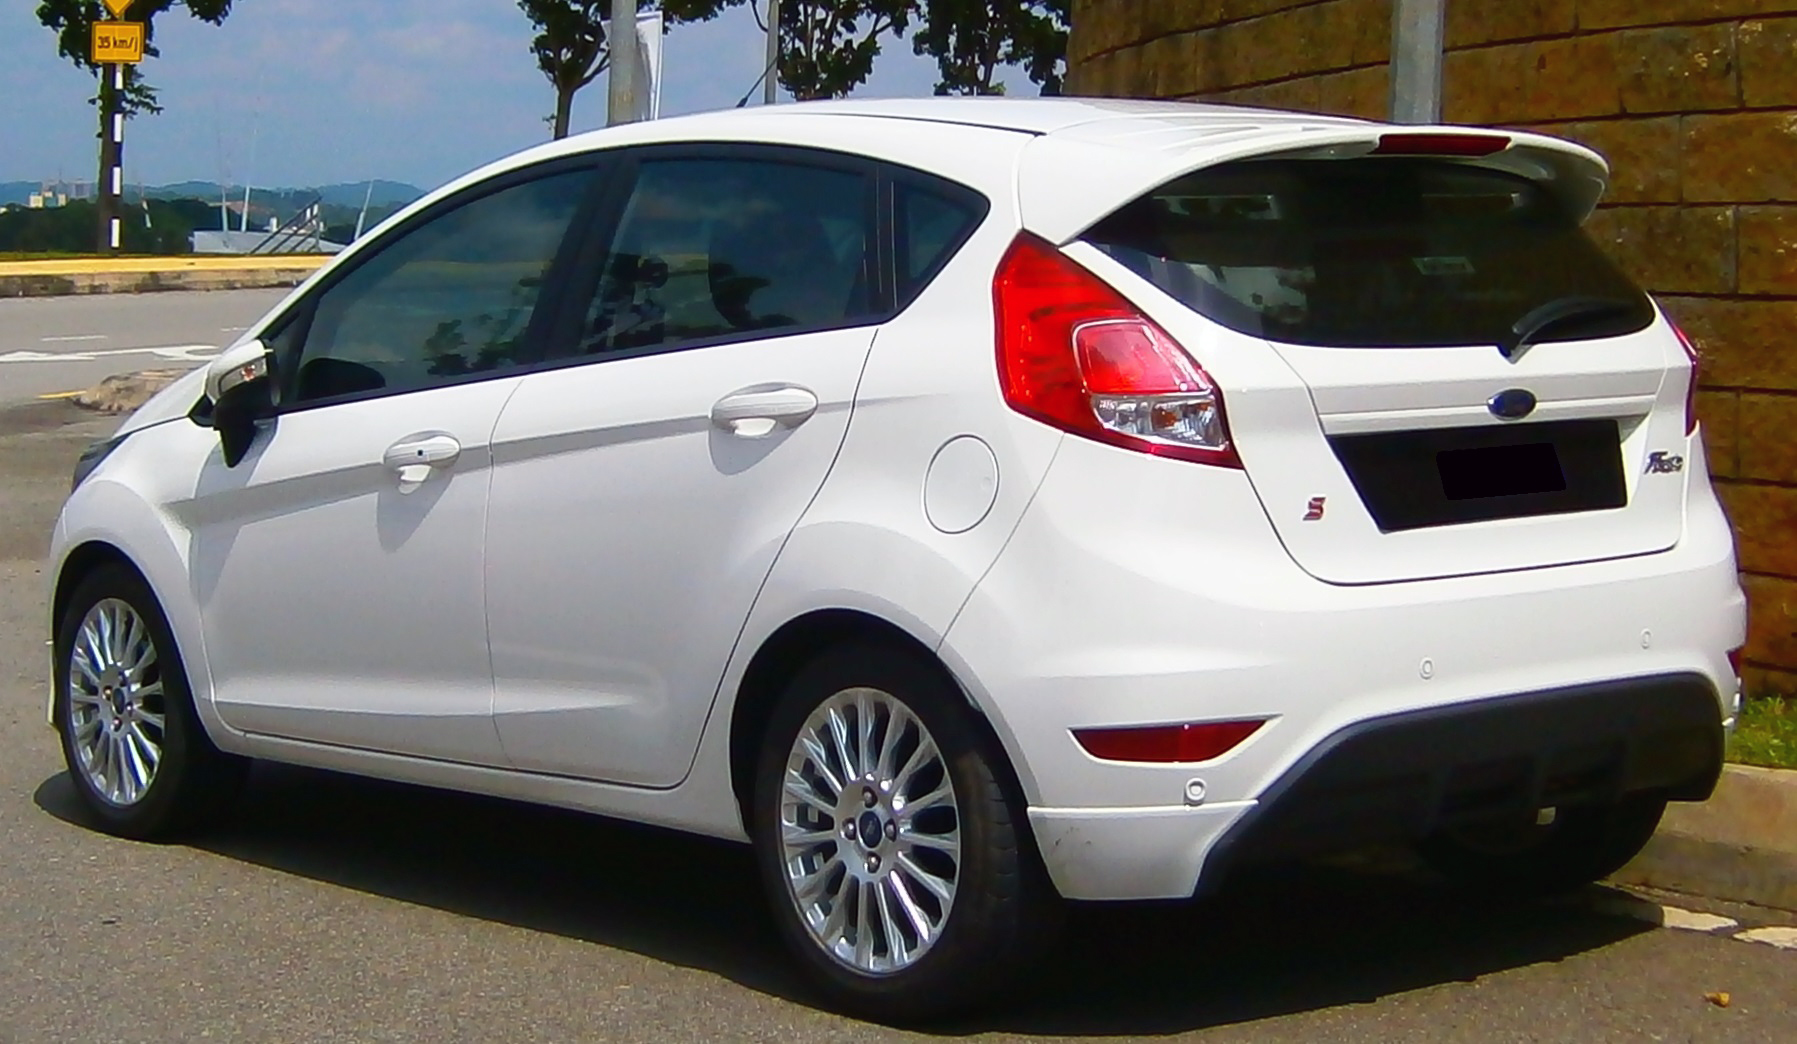 Ford Fiesta 1.5 2013 photo - 5